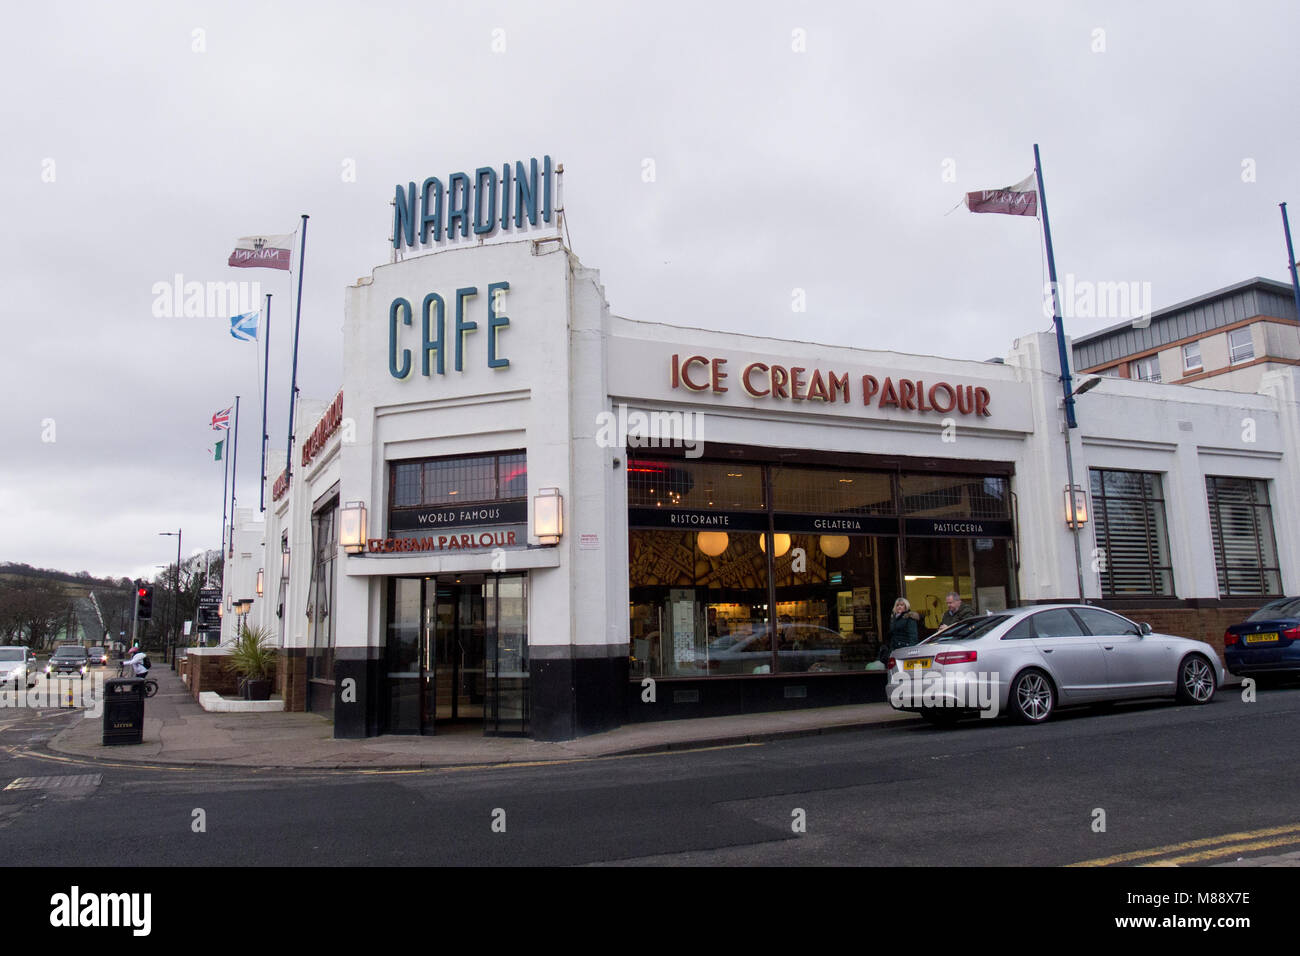 Nardinis Cafe and Ice Cream Parlour, Largs, Scotland - Stock Image